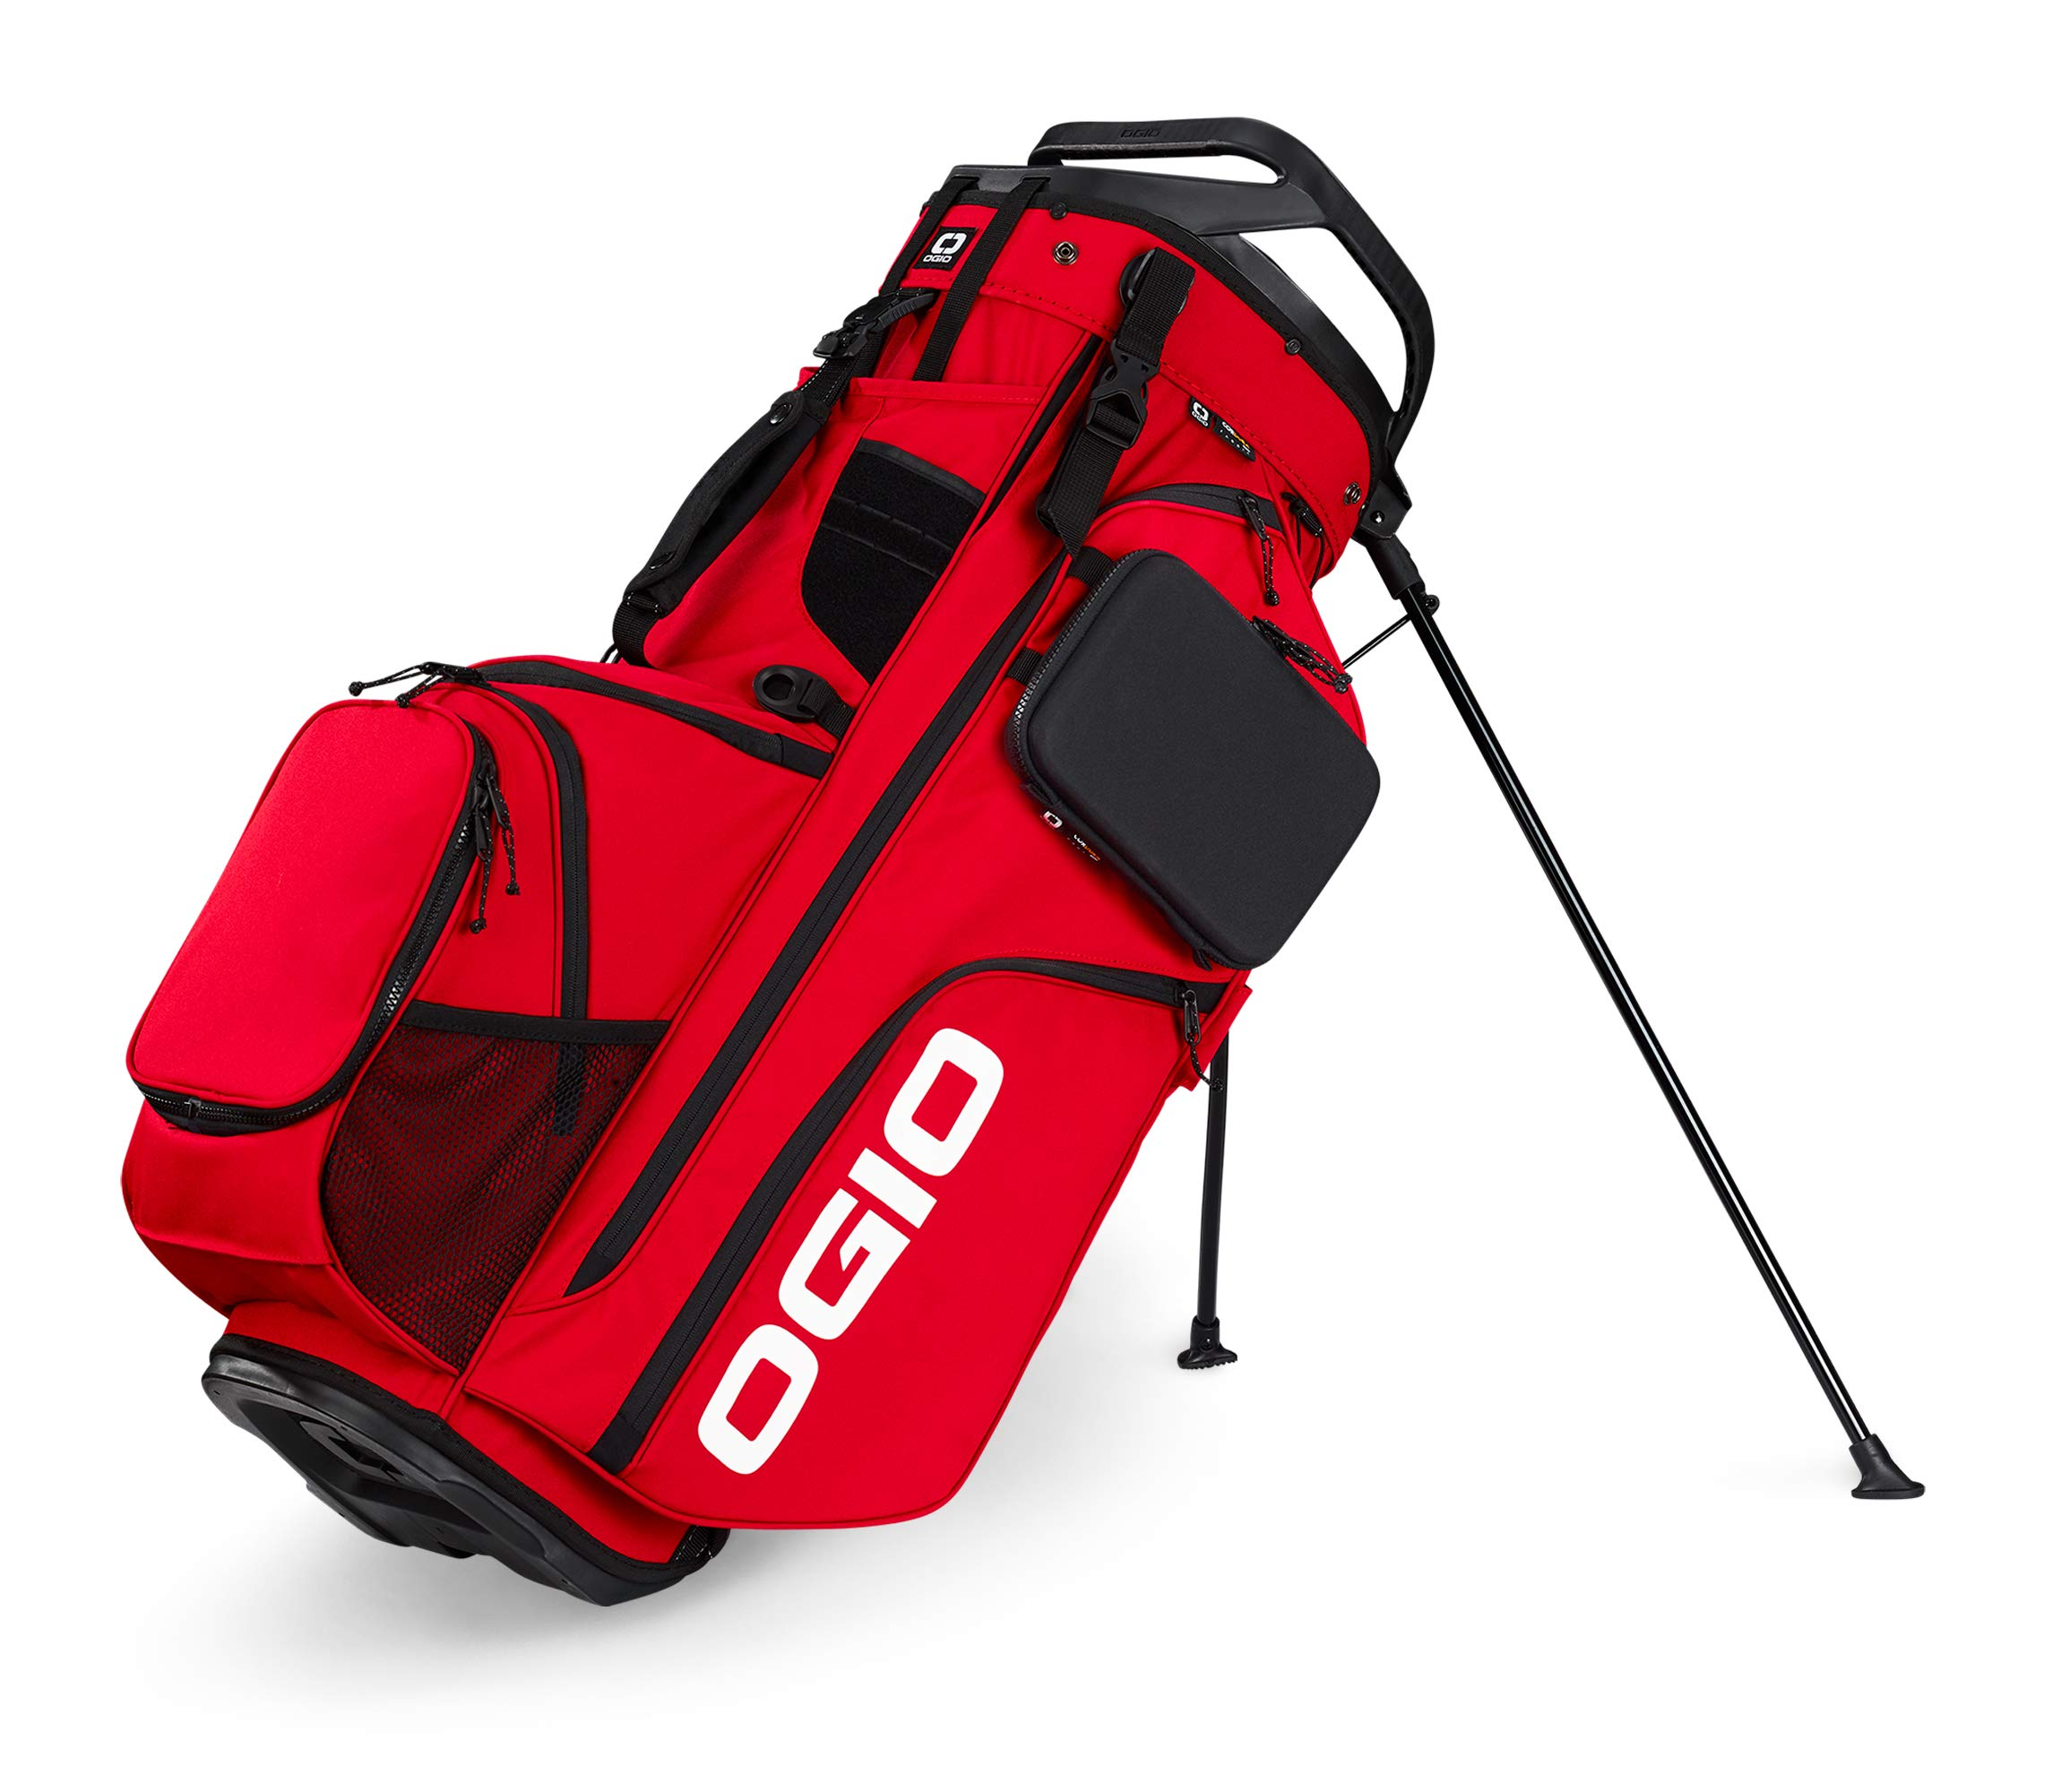 OGIO ALPHA Convoy 514 Golf Stand Bag, Deep Red by OGIO